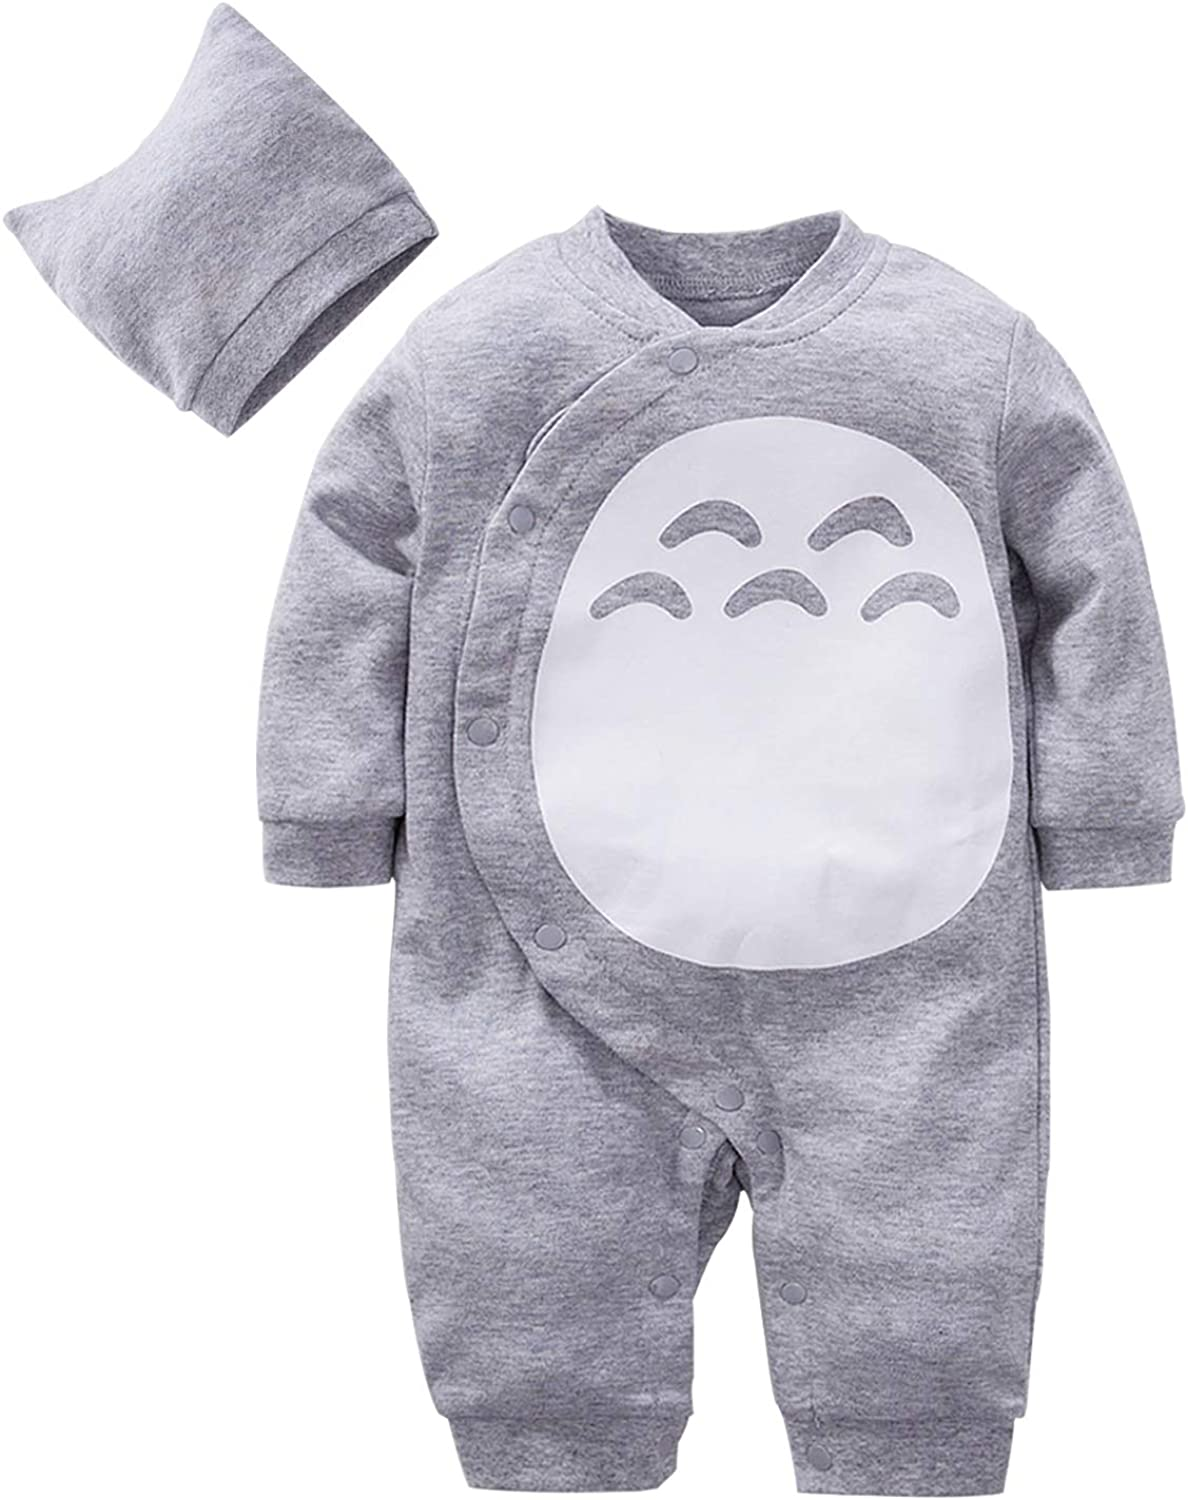 YFYBaby 2-Pack Newborn Boys Girls Rompers Cute Infant Toddler Cotton Onesie Outfits Cosplay Cartoon Costume